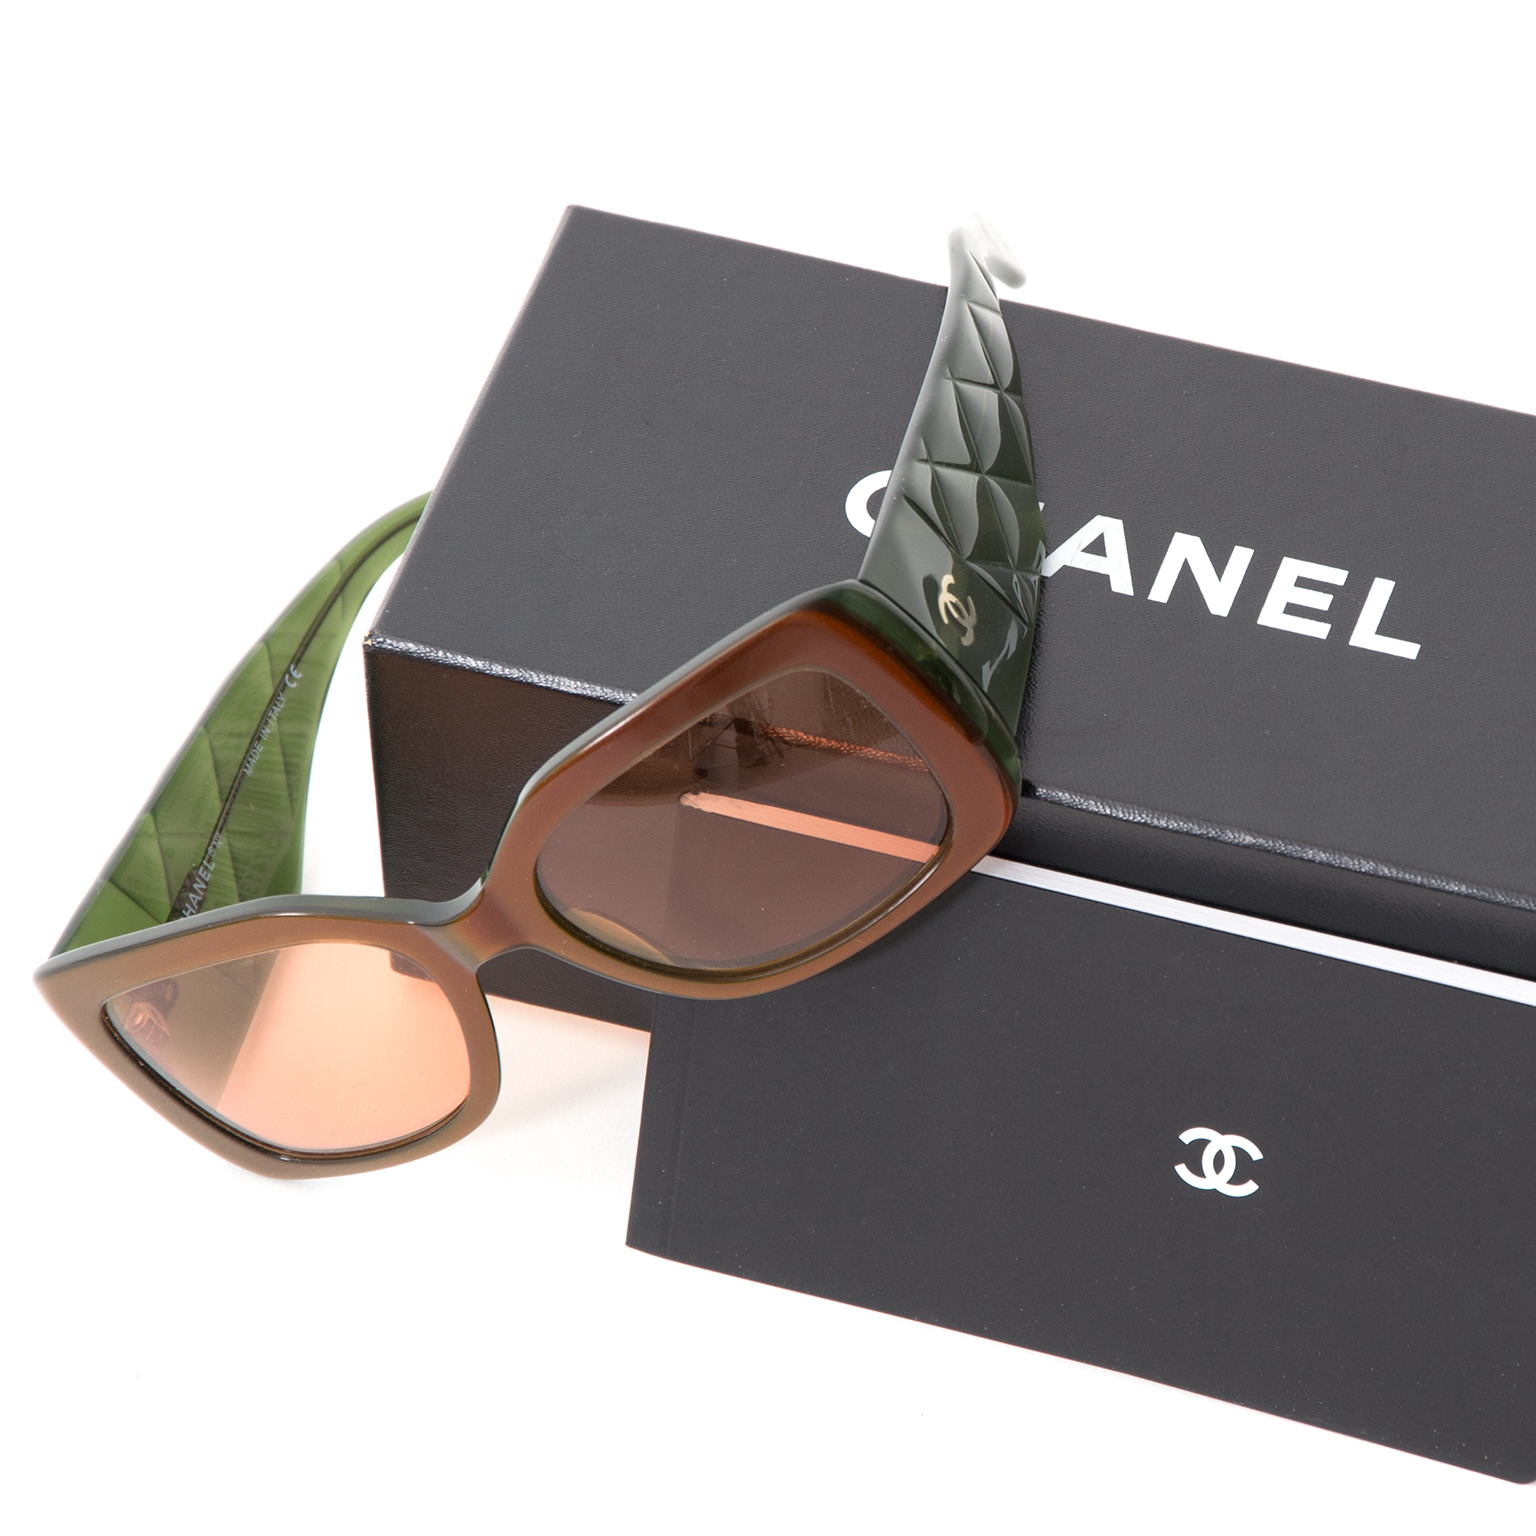 Brand new and authentic Chanel Bicolor Sunglasses in khaki green and brown shop safe and secure at Labellov